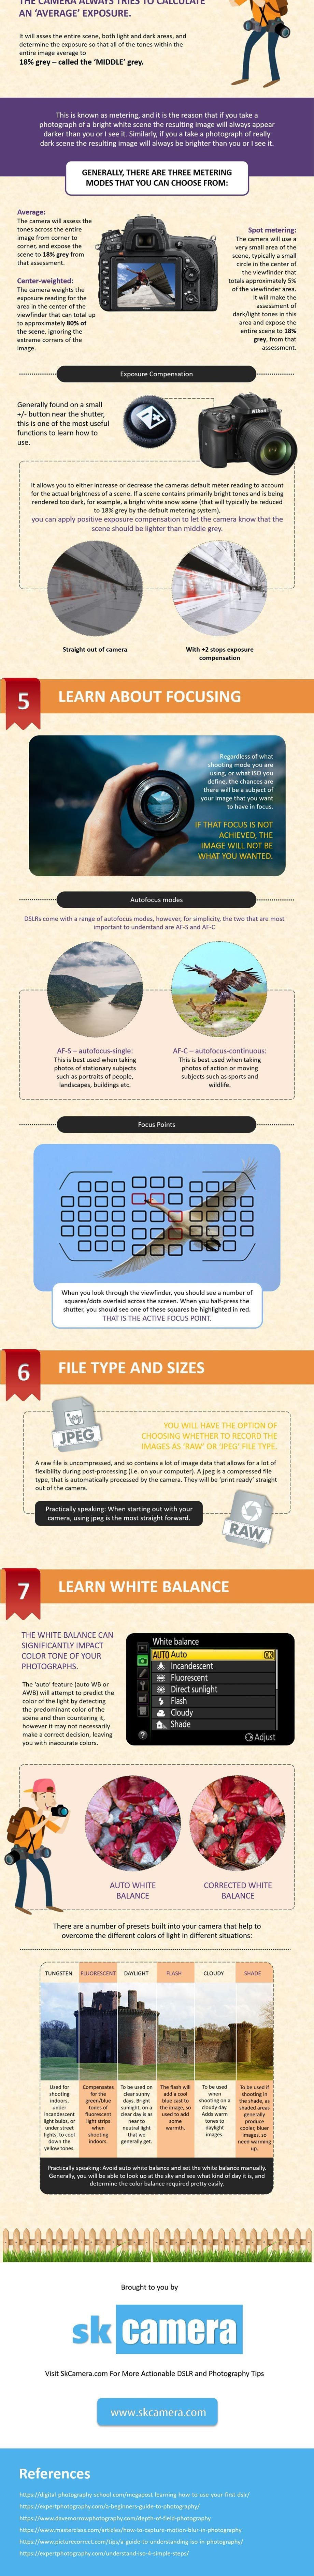 How to Use a DSLR Camera - The Ultimate Guide (Infographic) - 2